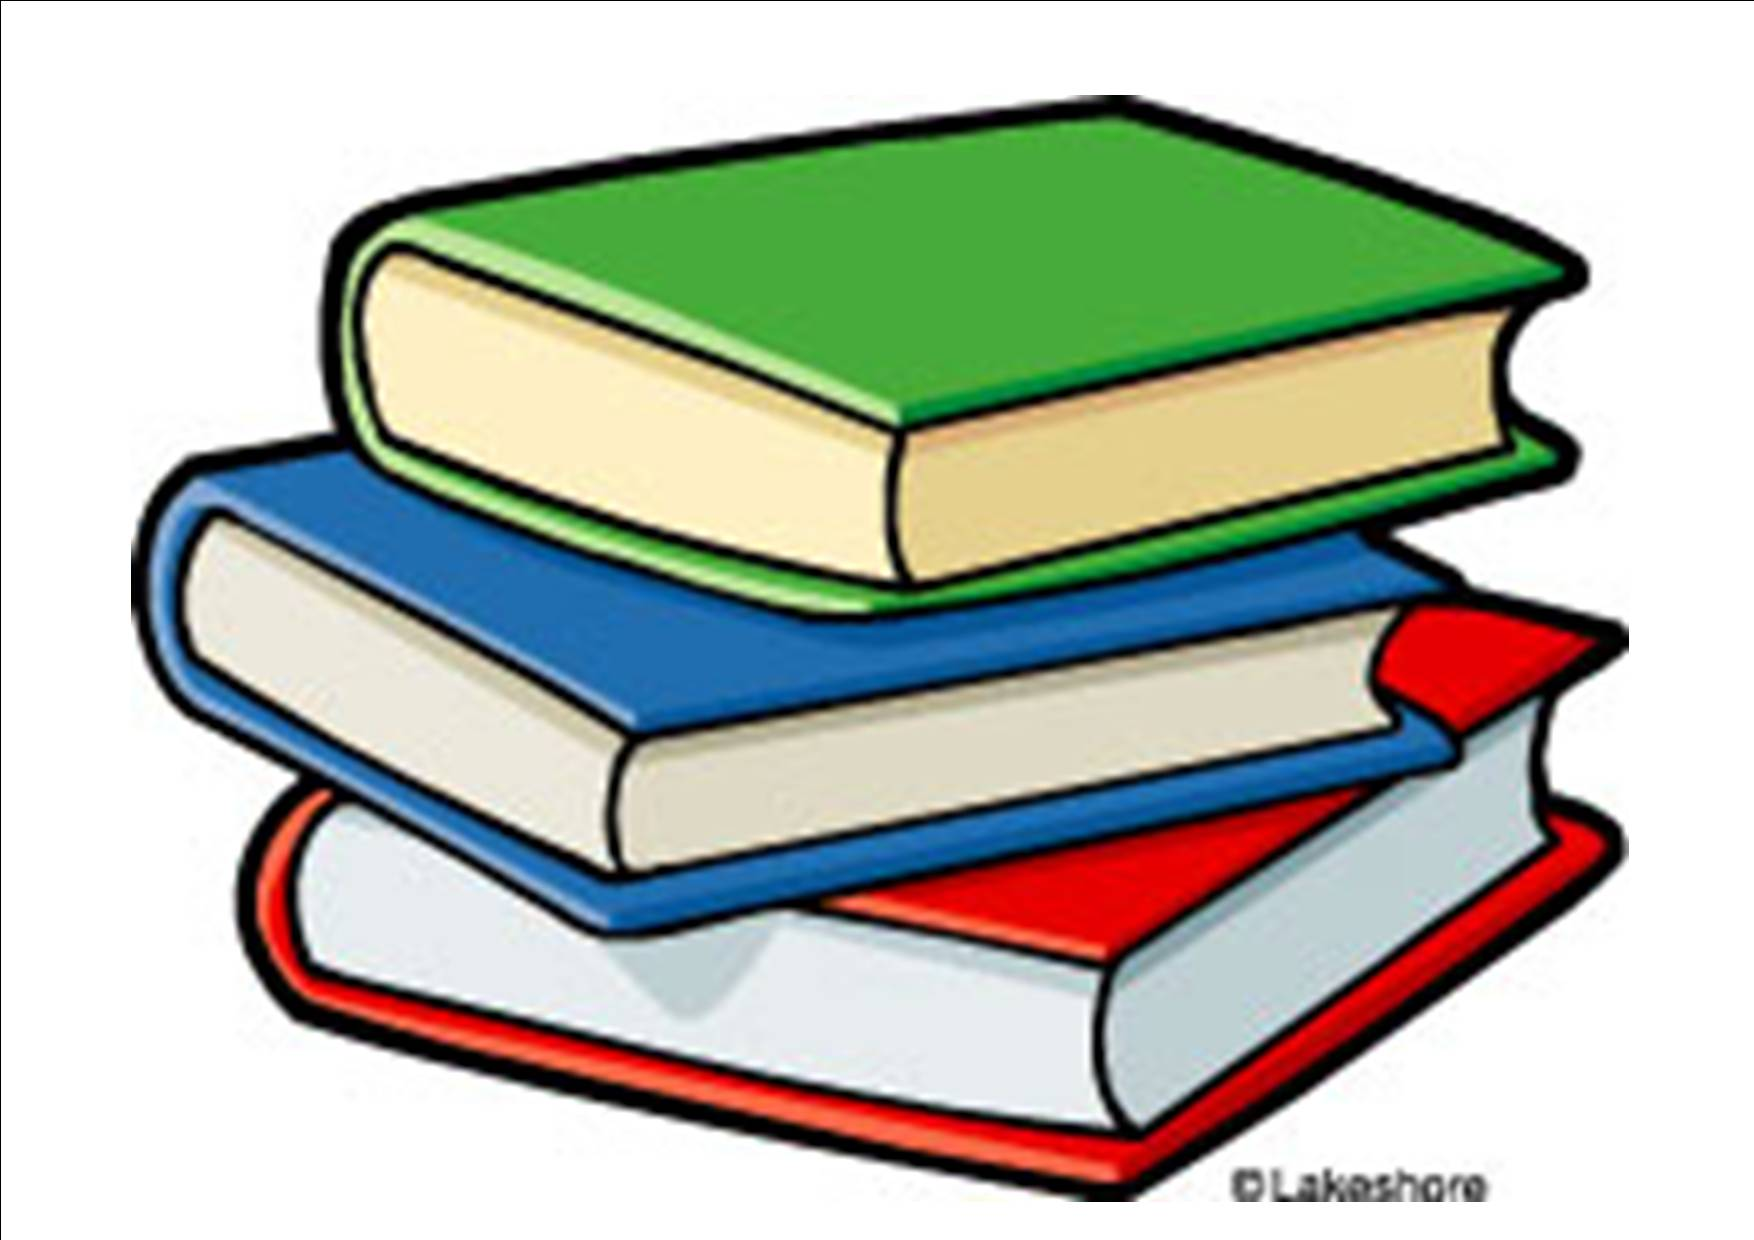 Stack of books image stack clipart a clip art 2